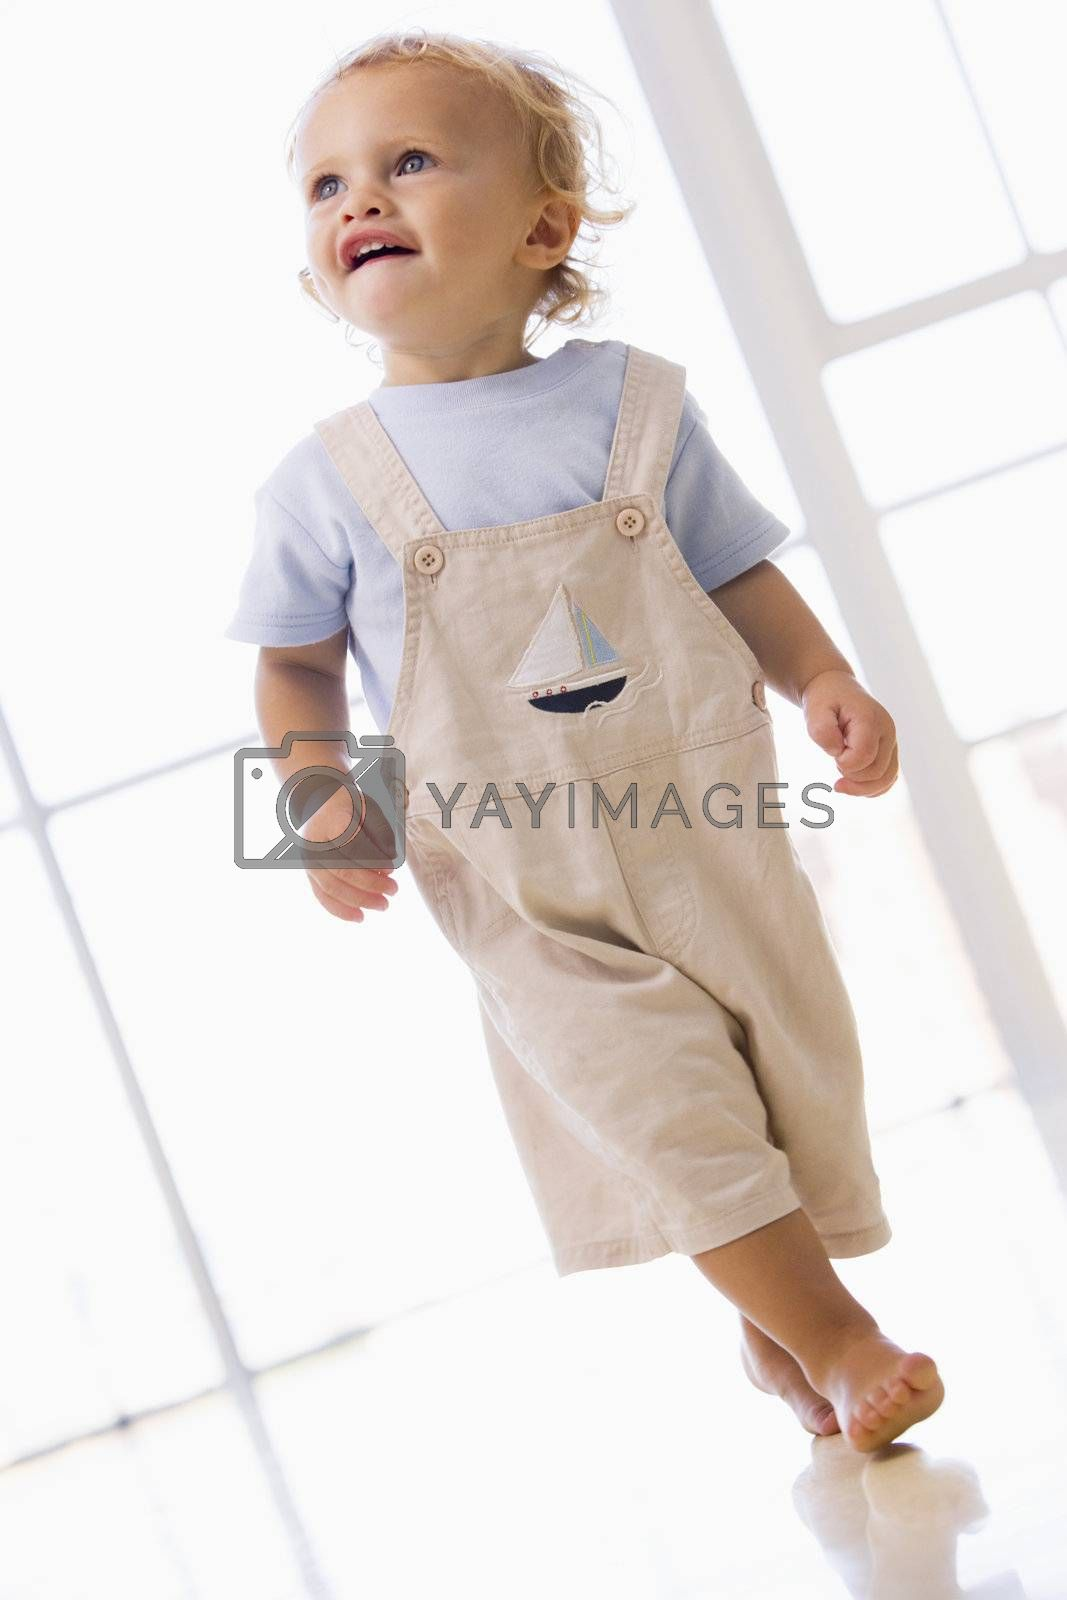 Young boy walking indoors smiling